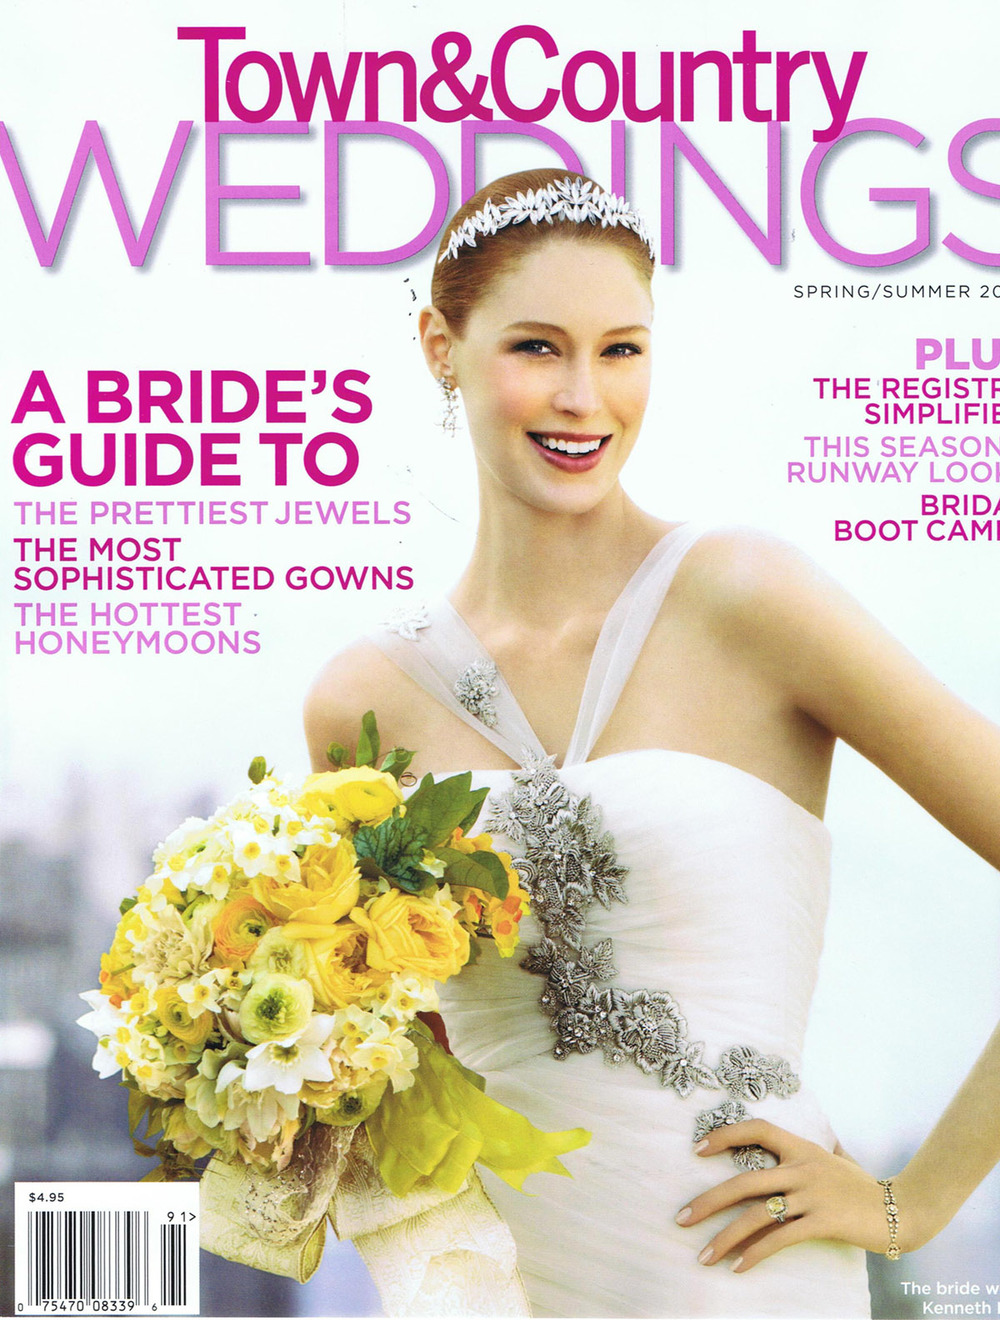 T&C WEDDINGS Spring & Summer 2009 p1 - edit 3.jpg